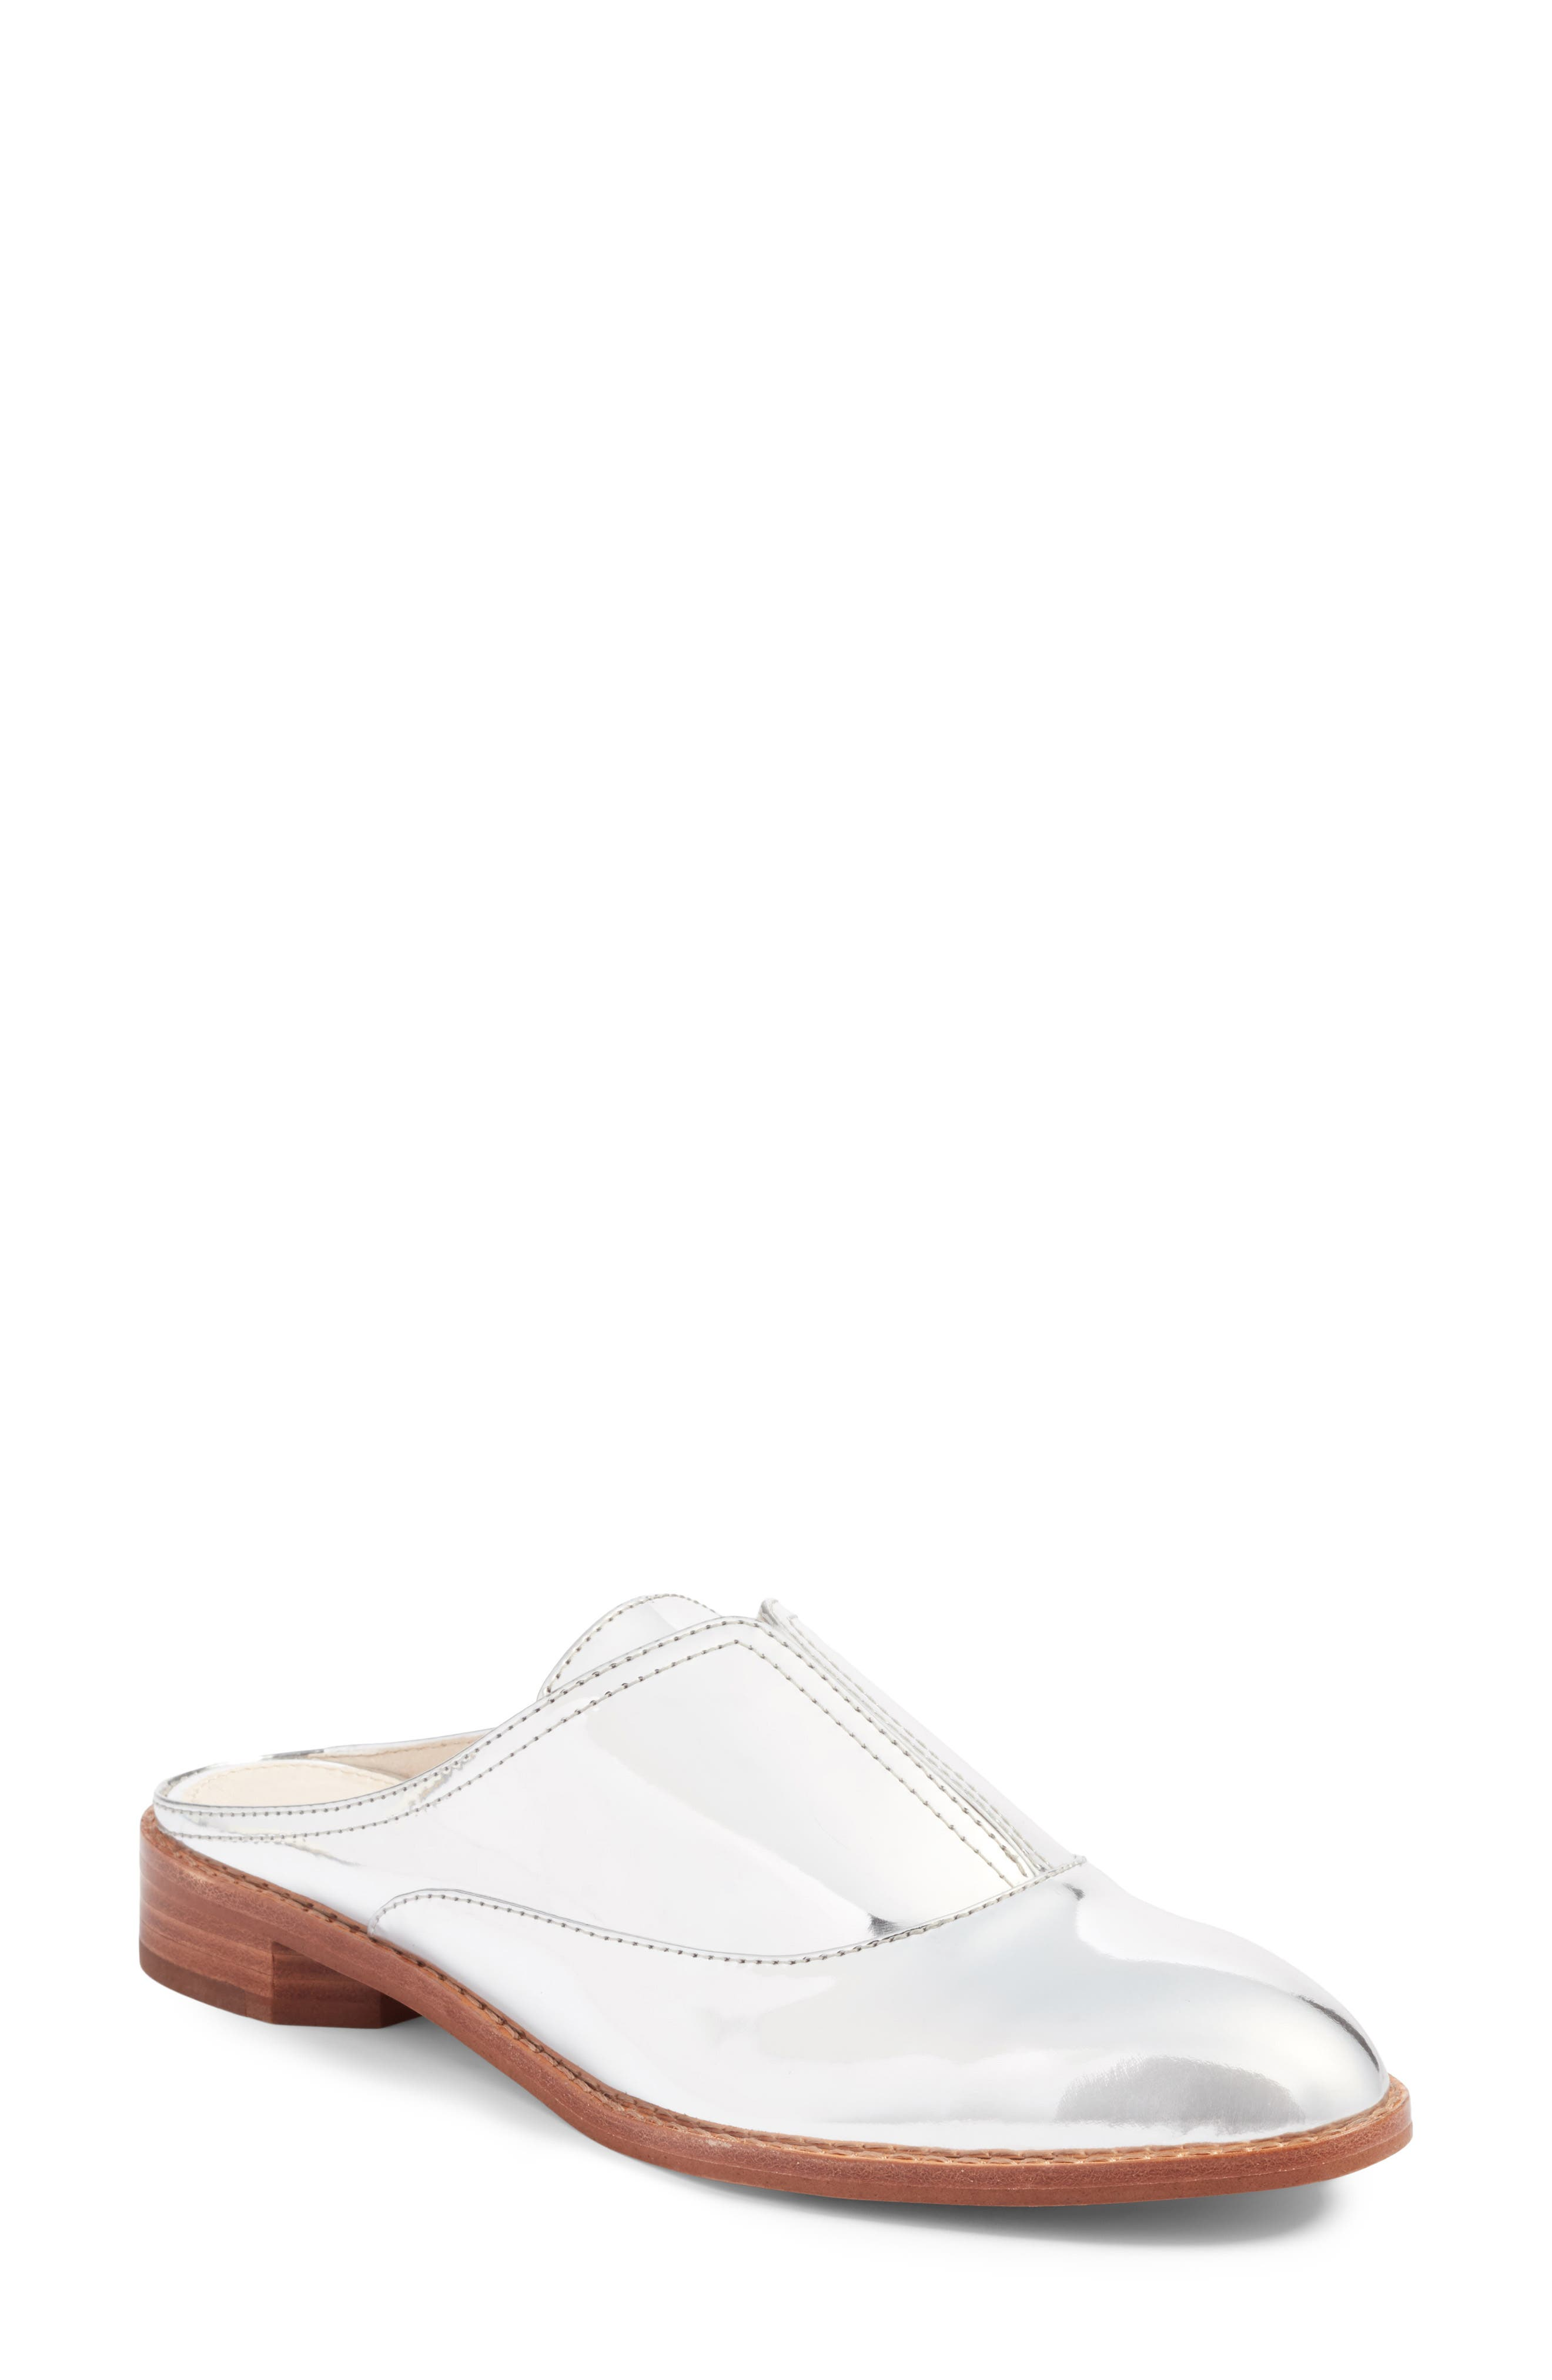 Louise et Cie Freyda Loafer Mule (Women)